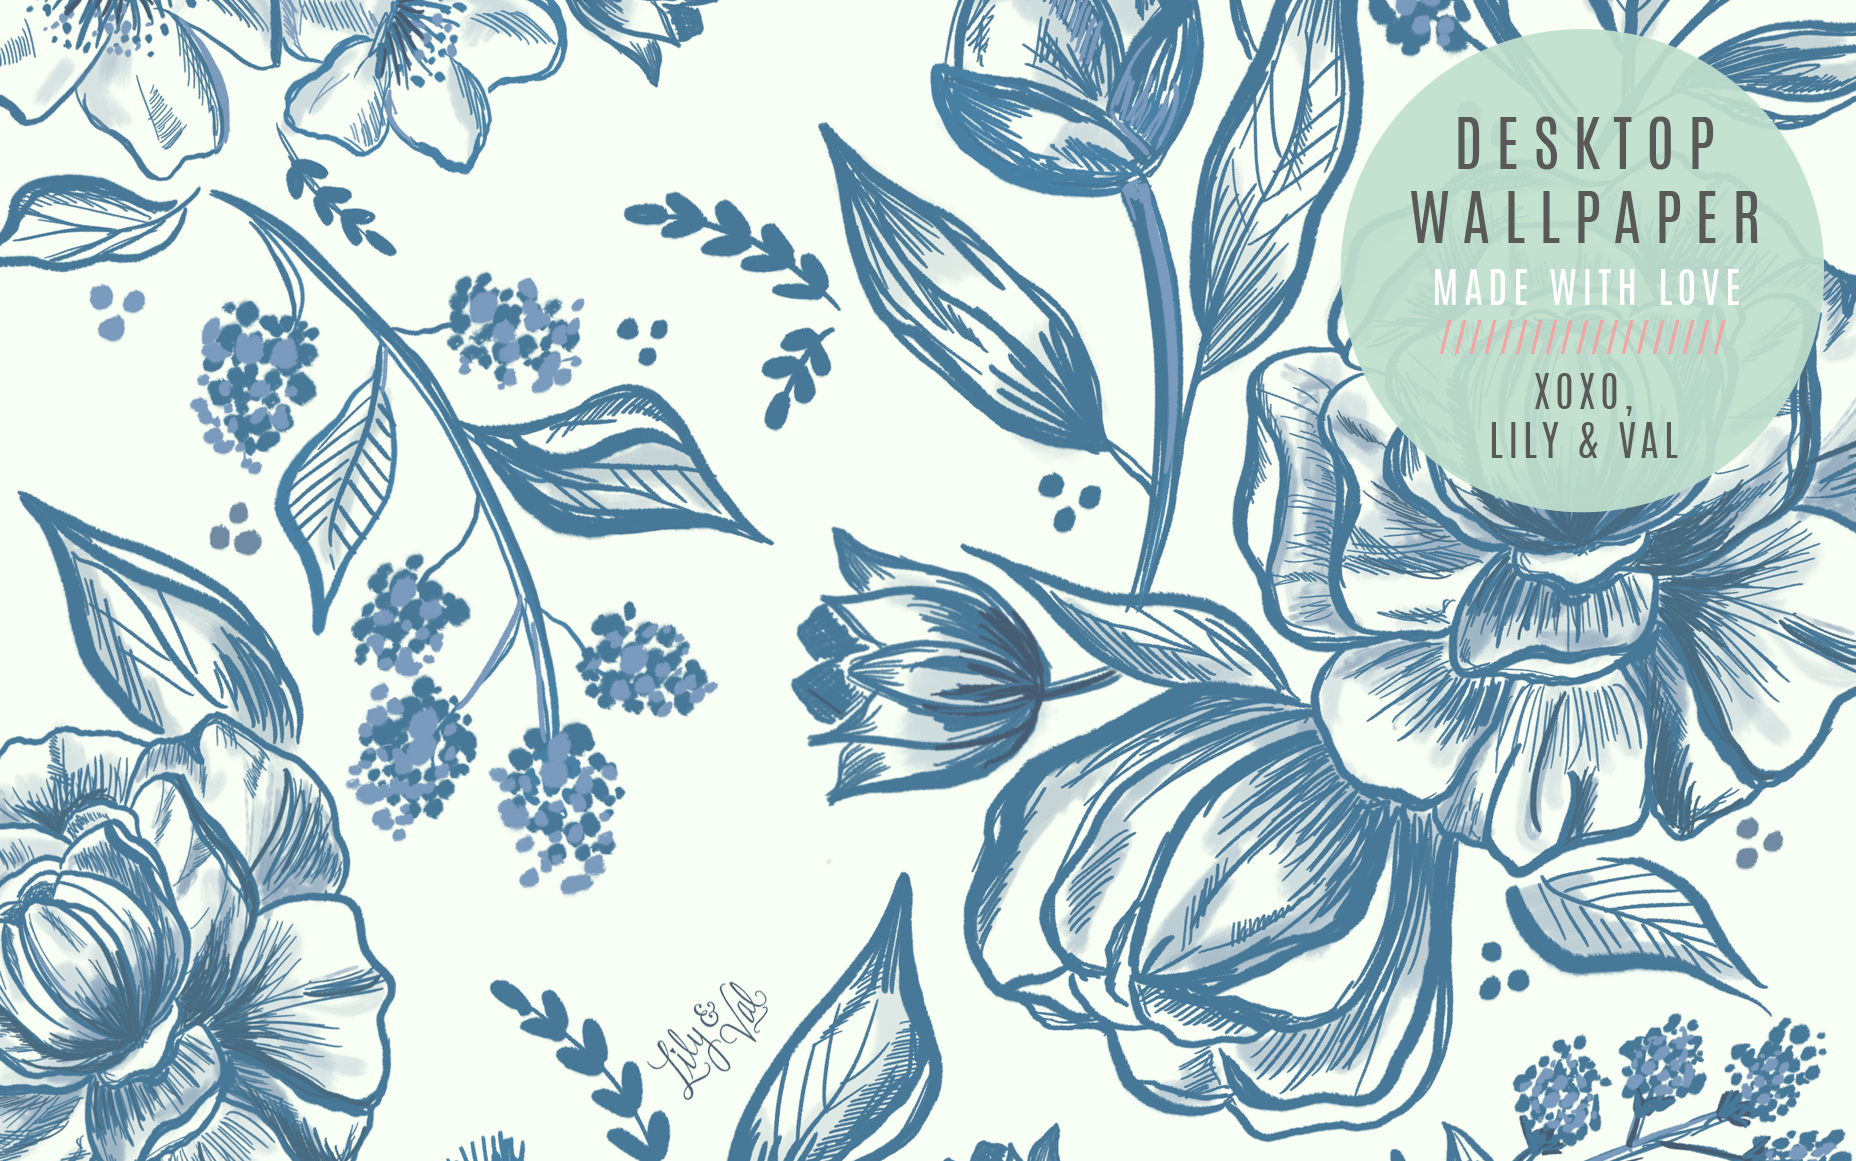 August's Blue Floral Free Desktop Wallpaper Download - hand-illustrated blue floral design by Valerie McKeehan of Lily & Val